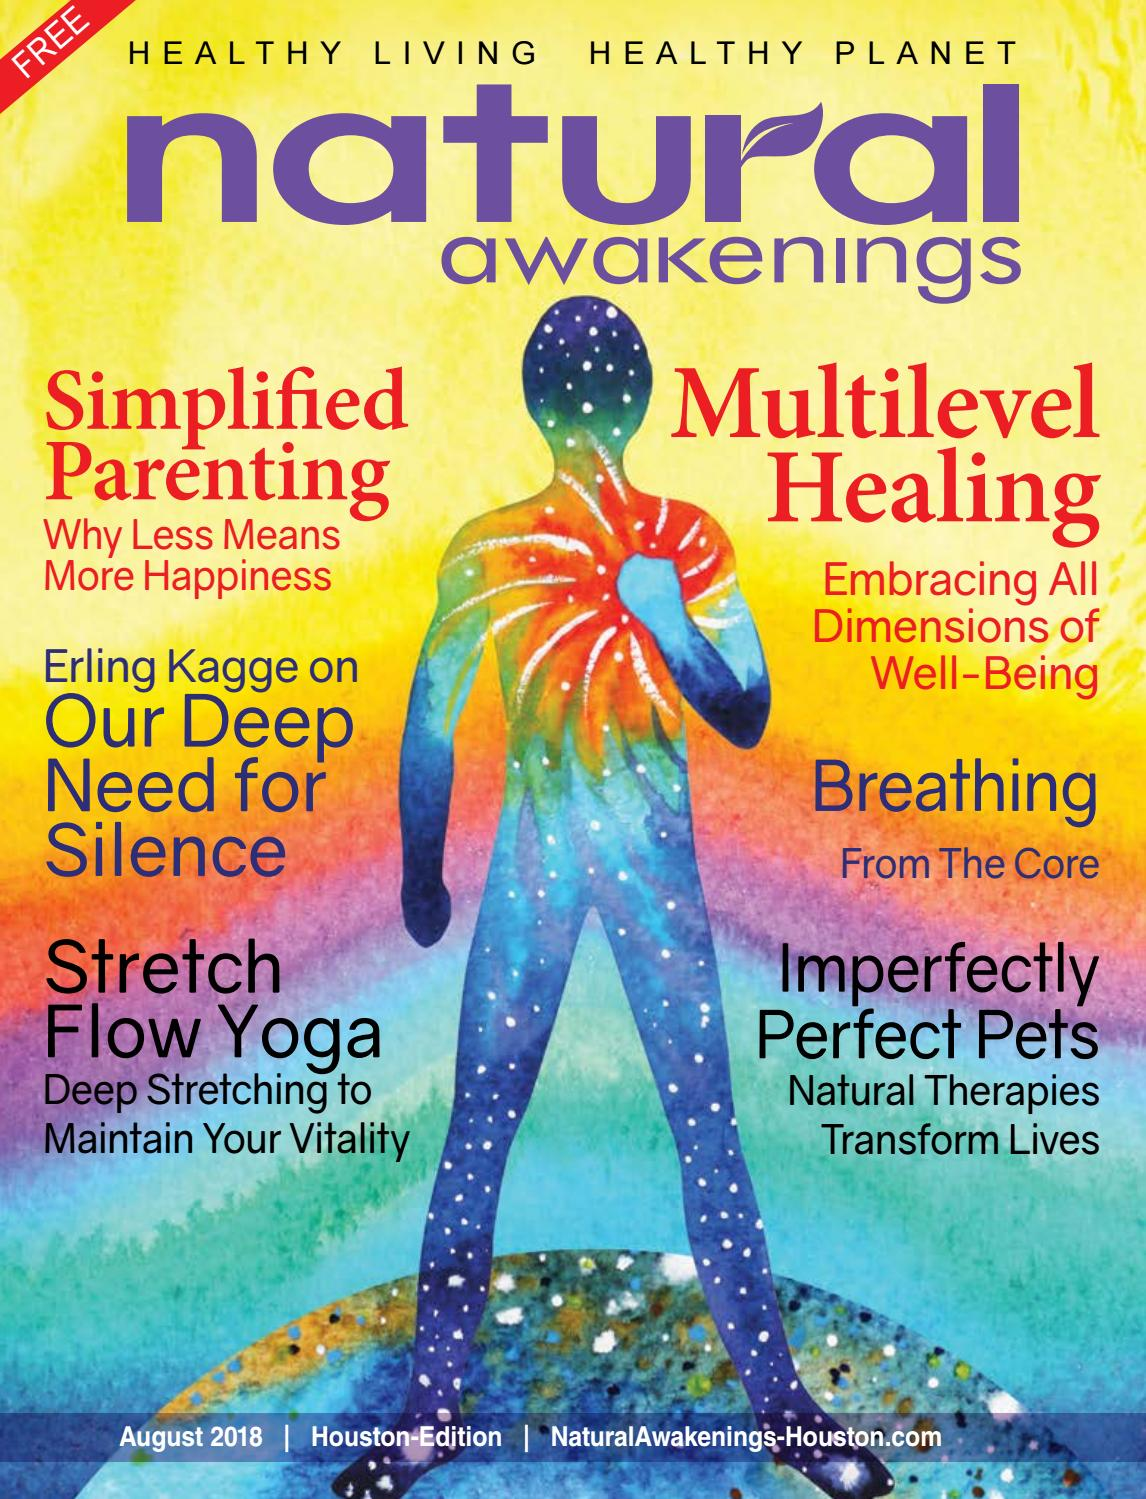 Natural Awakenings-Houston  August 2018 by Holistic Choice